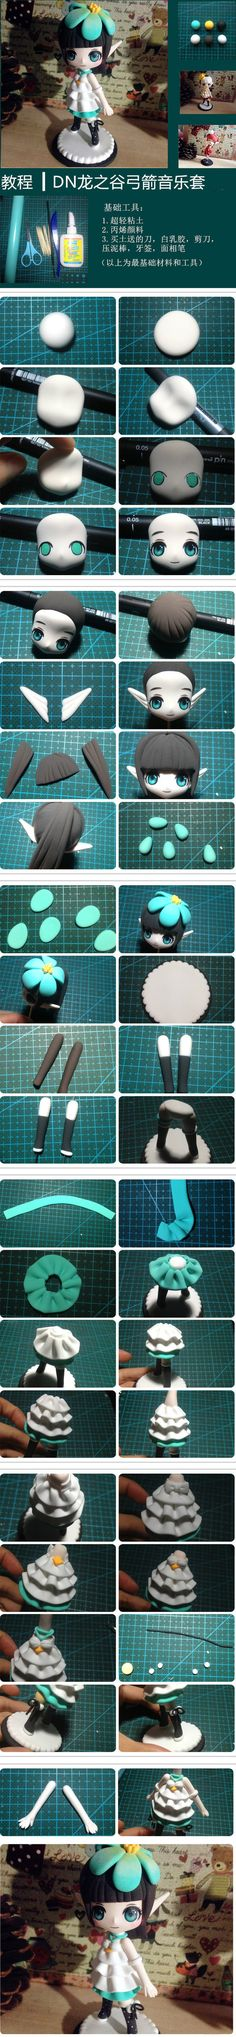 Polymer Clay Anime Fairy Chibi figurine picture tutorial am I the only one who doesnt fully get how to do the eyes Polymer Clay Figures, Polymer Clay Dolls, Polymer Clay Charms, Polymer Clay Projects, Polymer Clay Creations, Clay Crafts, Cute Clay, Clay Figurine, Sculpture Clay